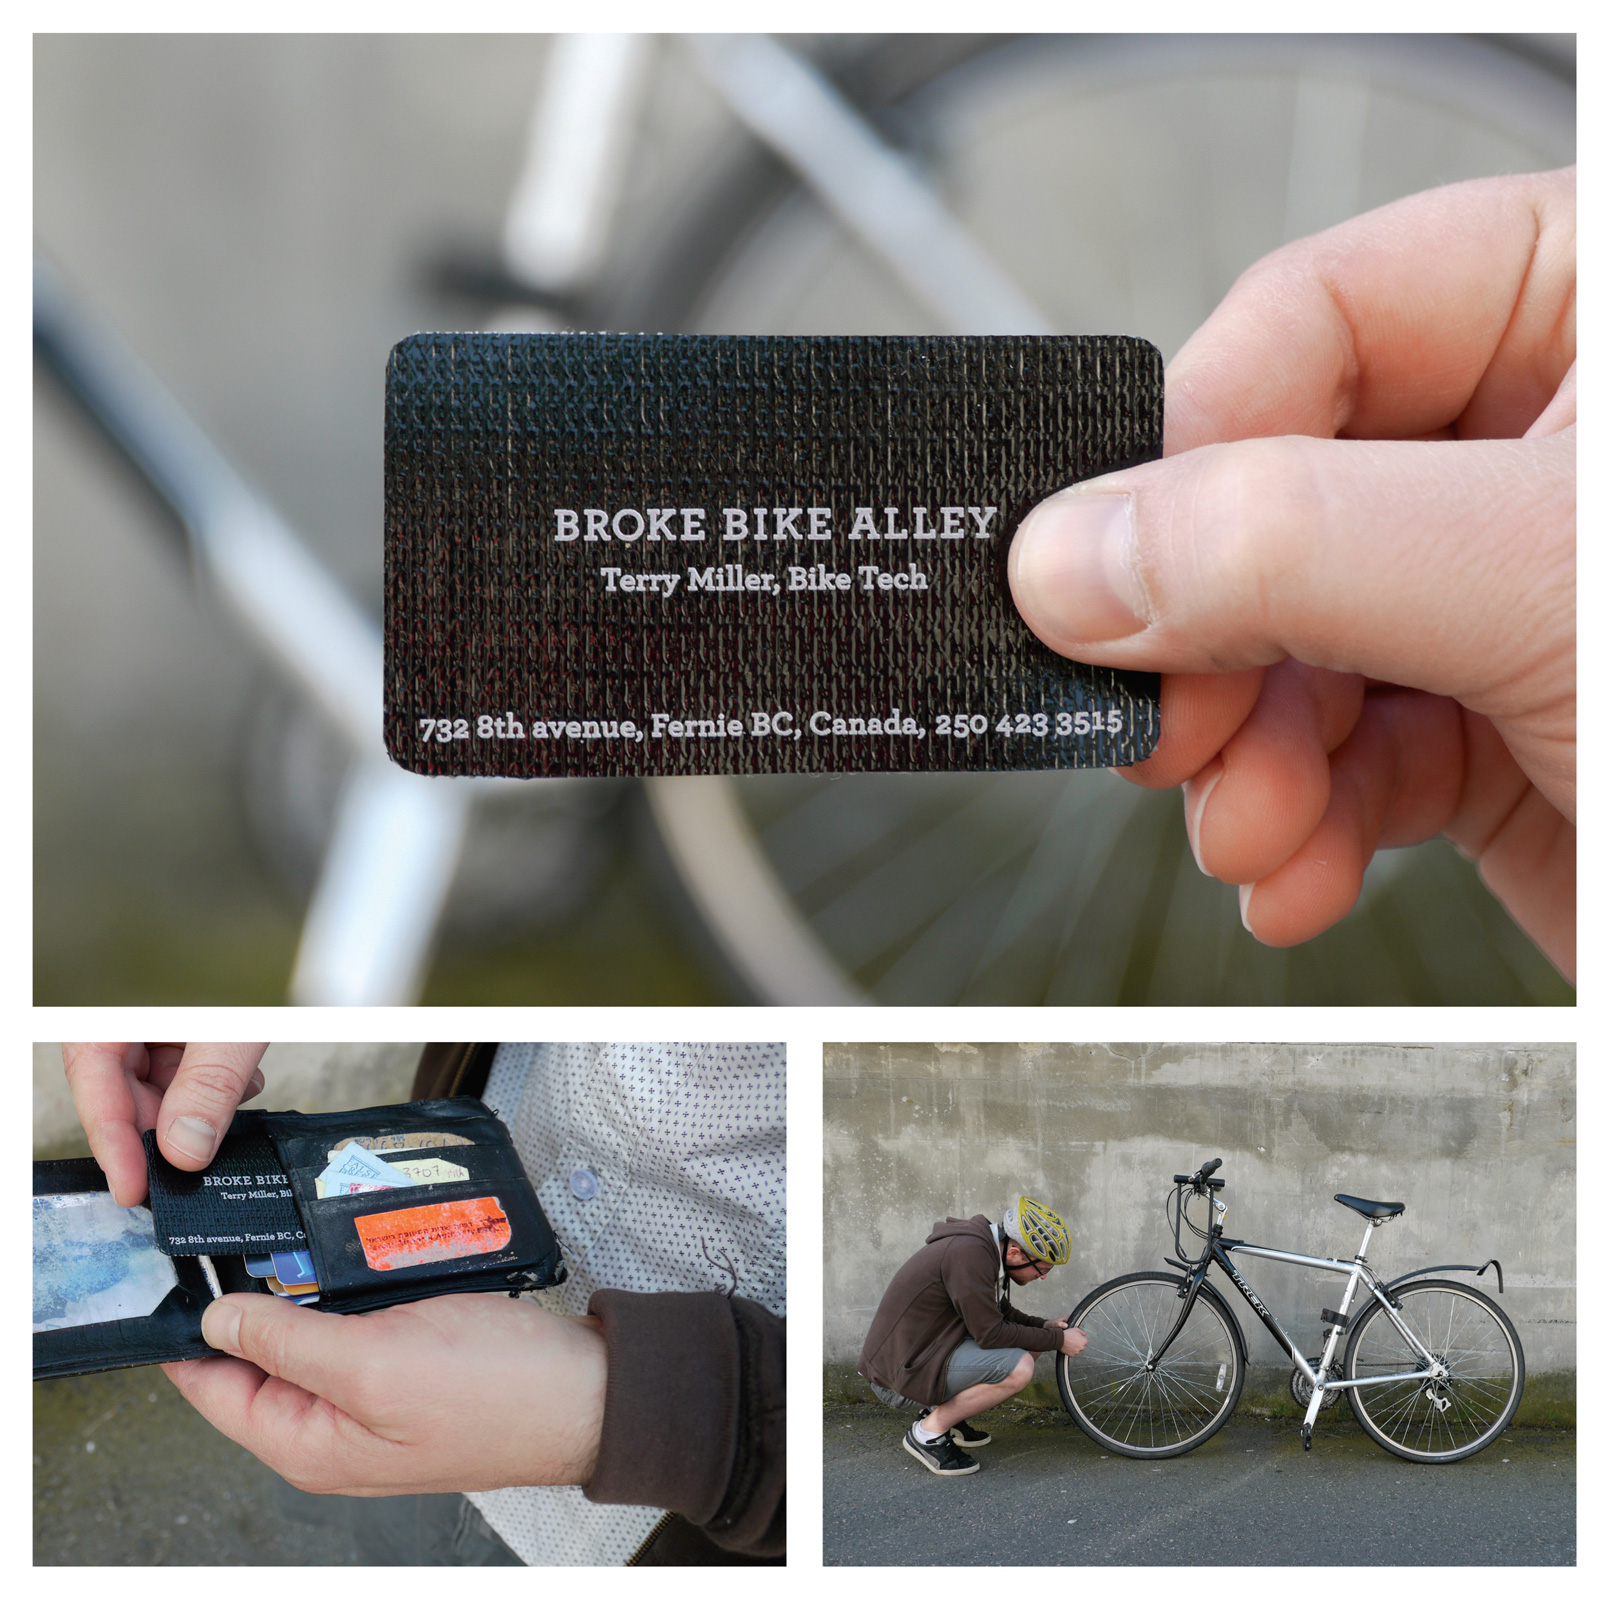 Broke Bike Alley Direct Advert By Rethink: Tire patch business card ...